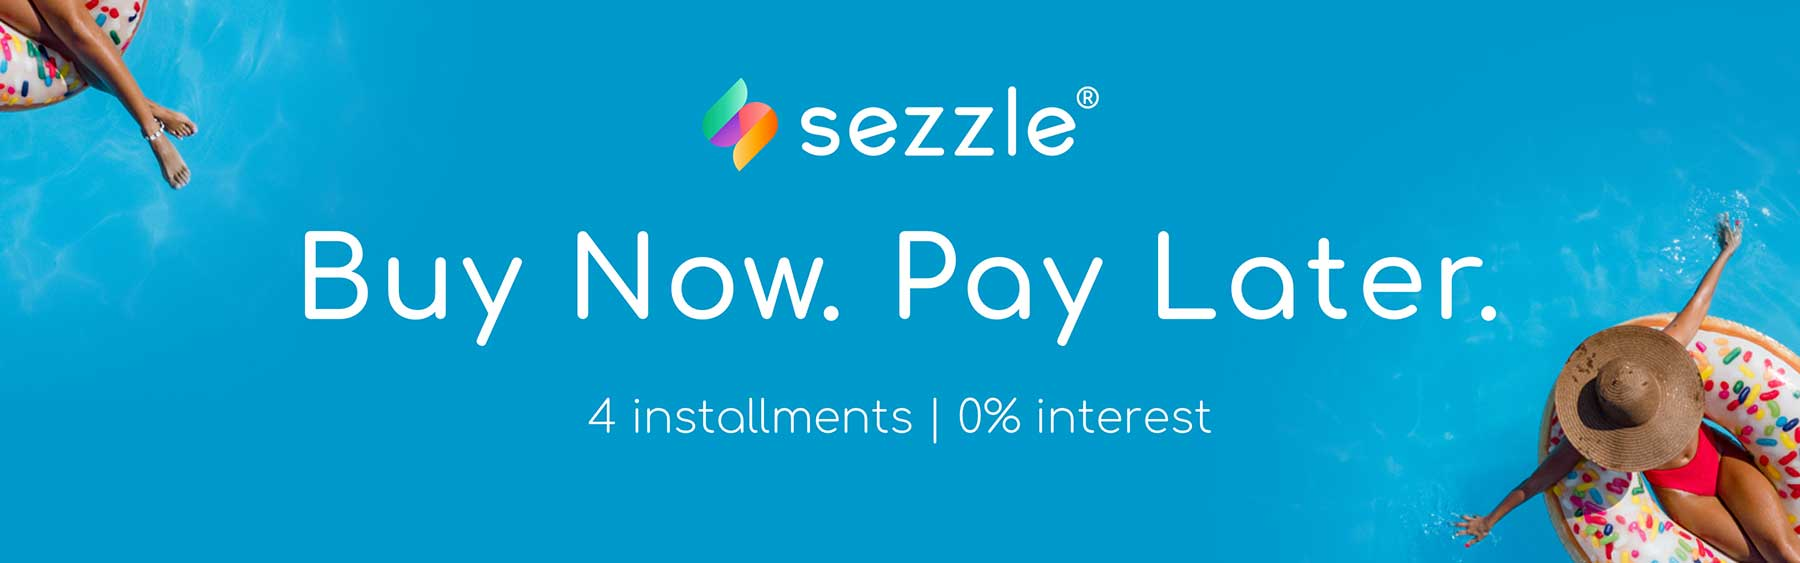 Sezzle banner image promoting Buy Now. Pay Later with woman on float in pool